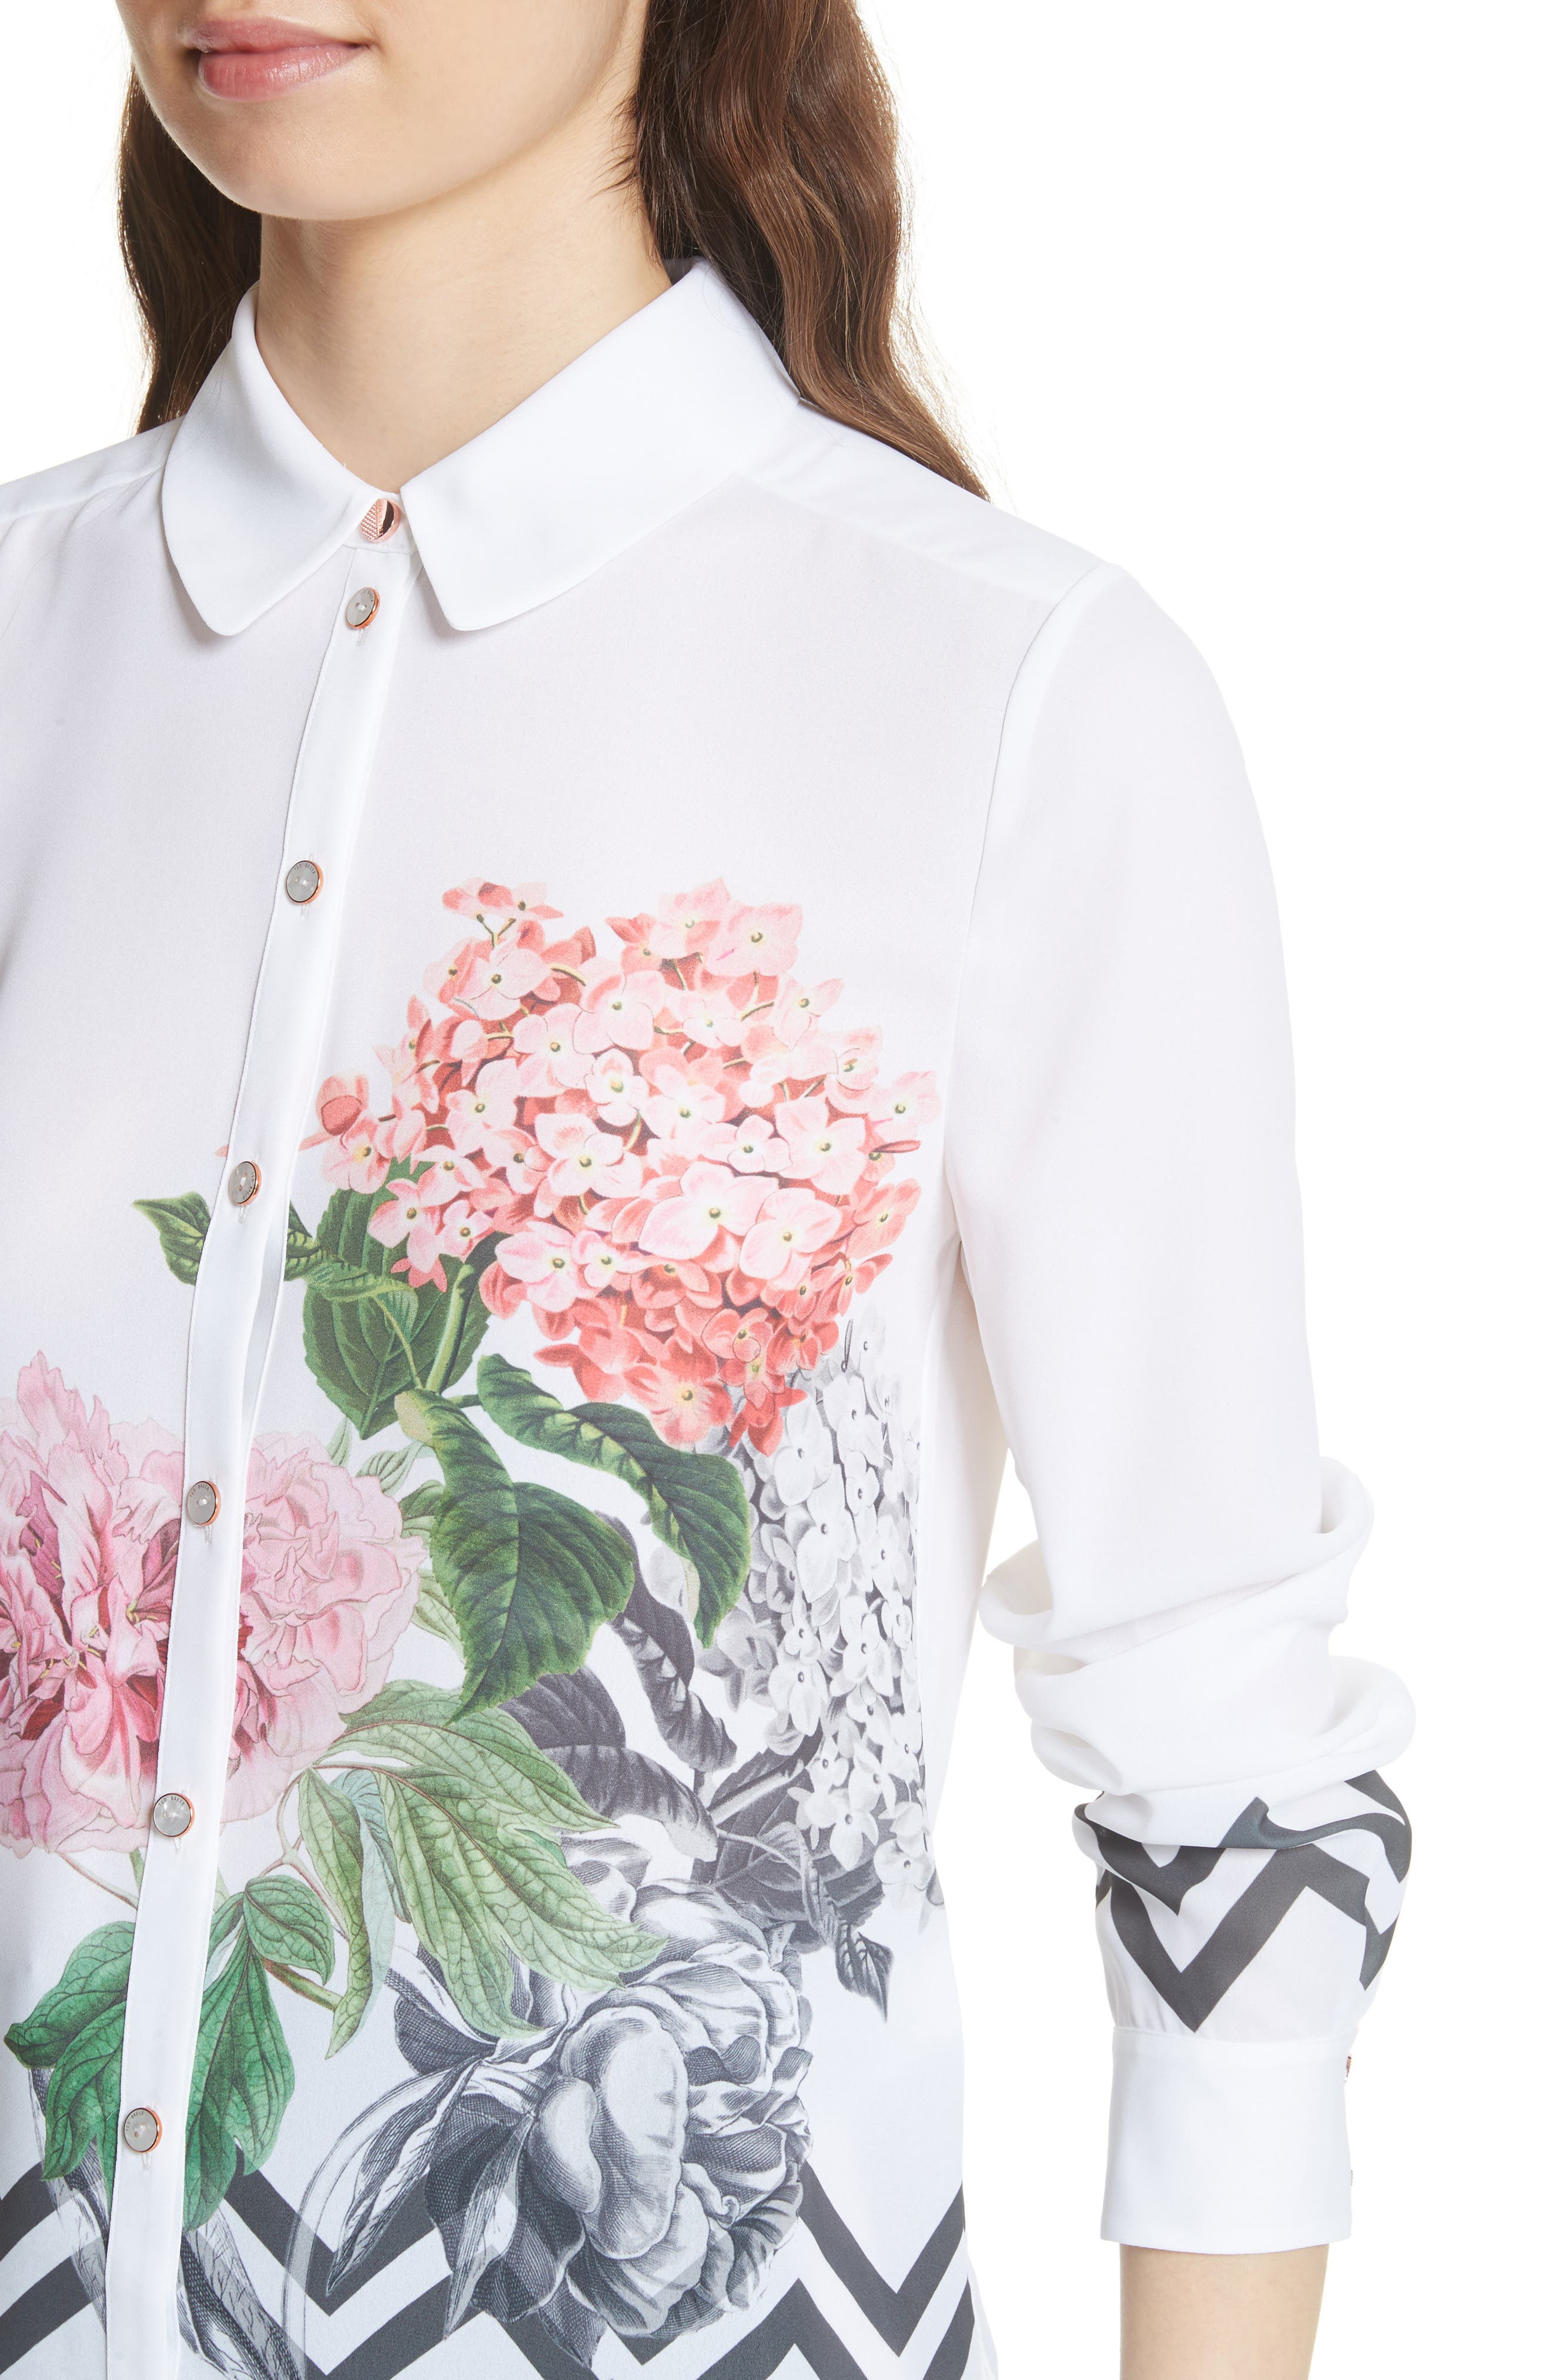 Palace Gardens Shirt,                             Alternate thumbnail 4, color,                             White